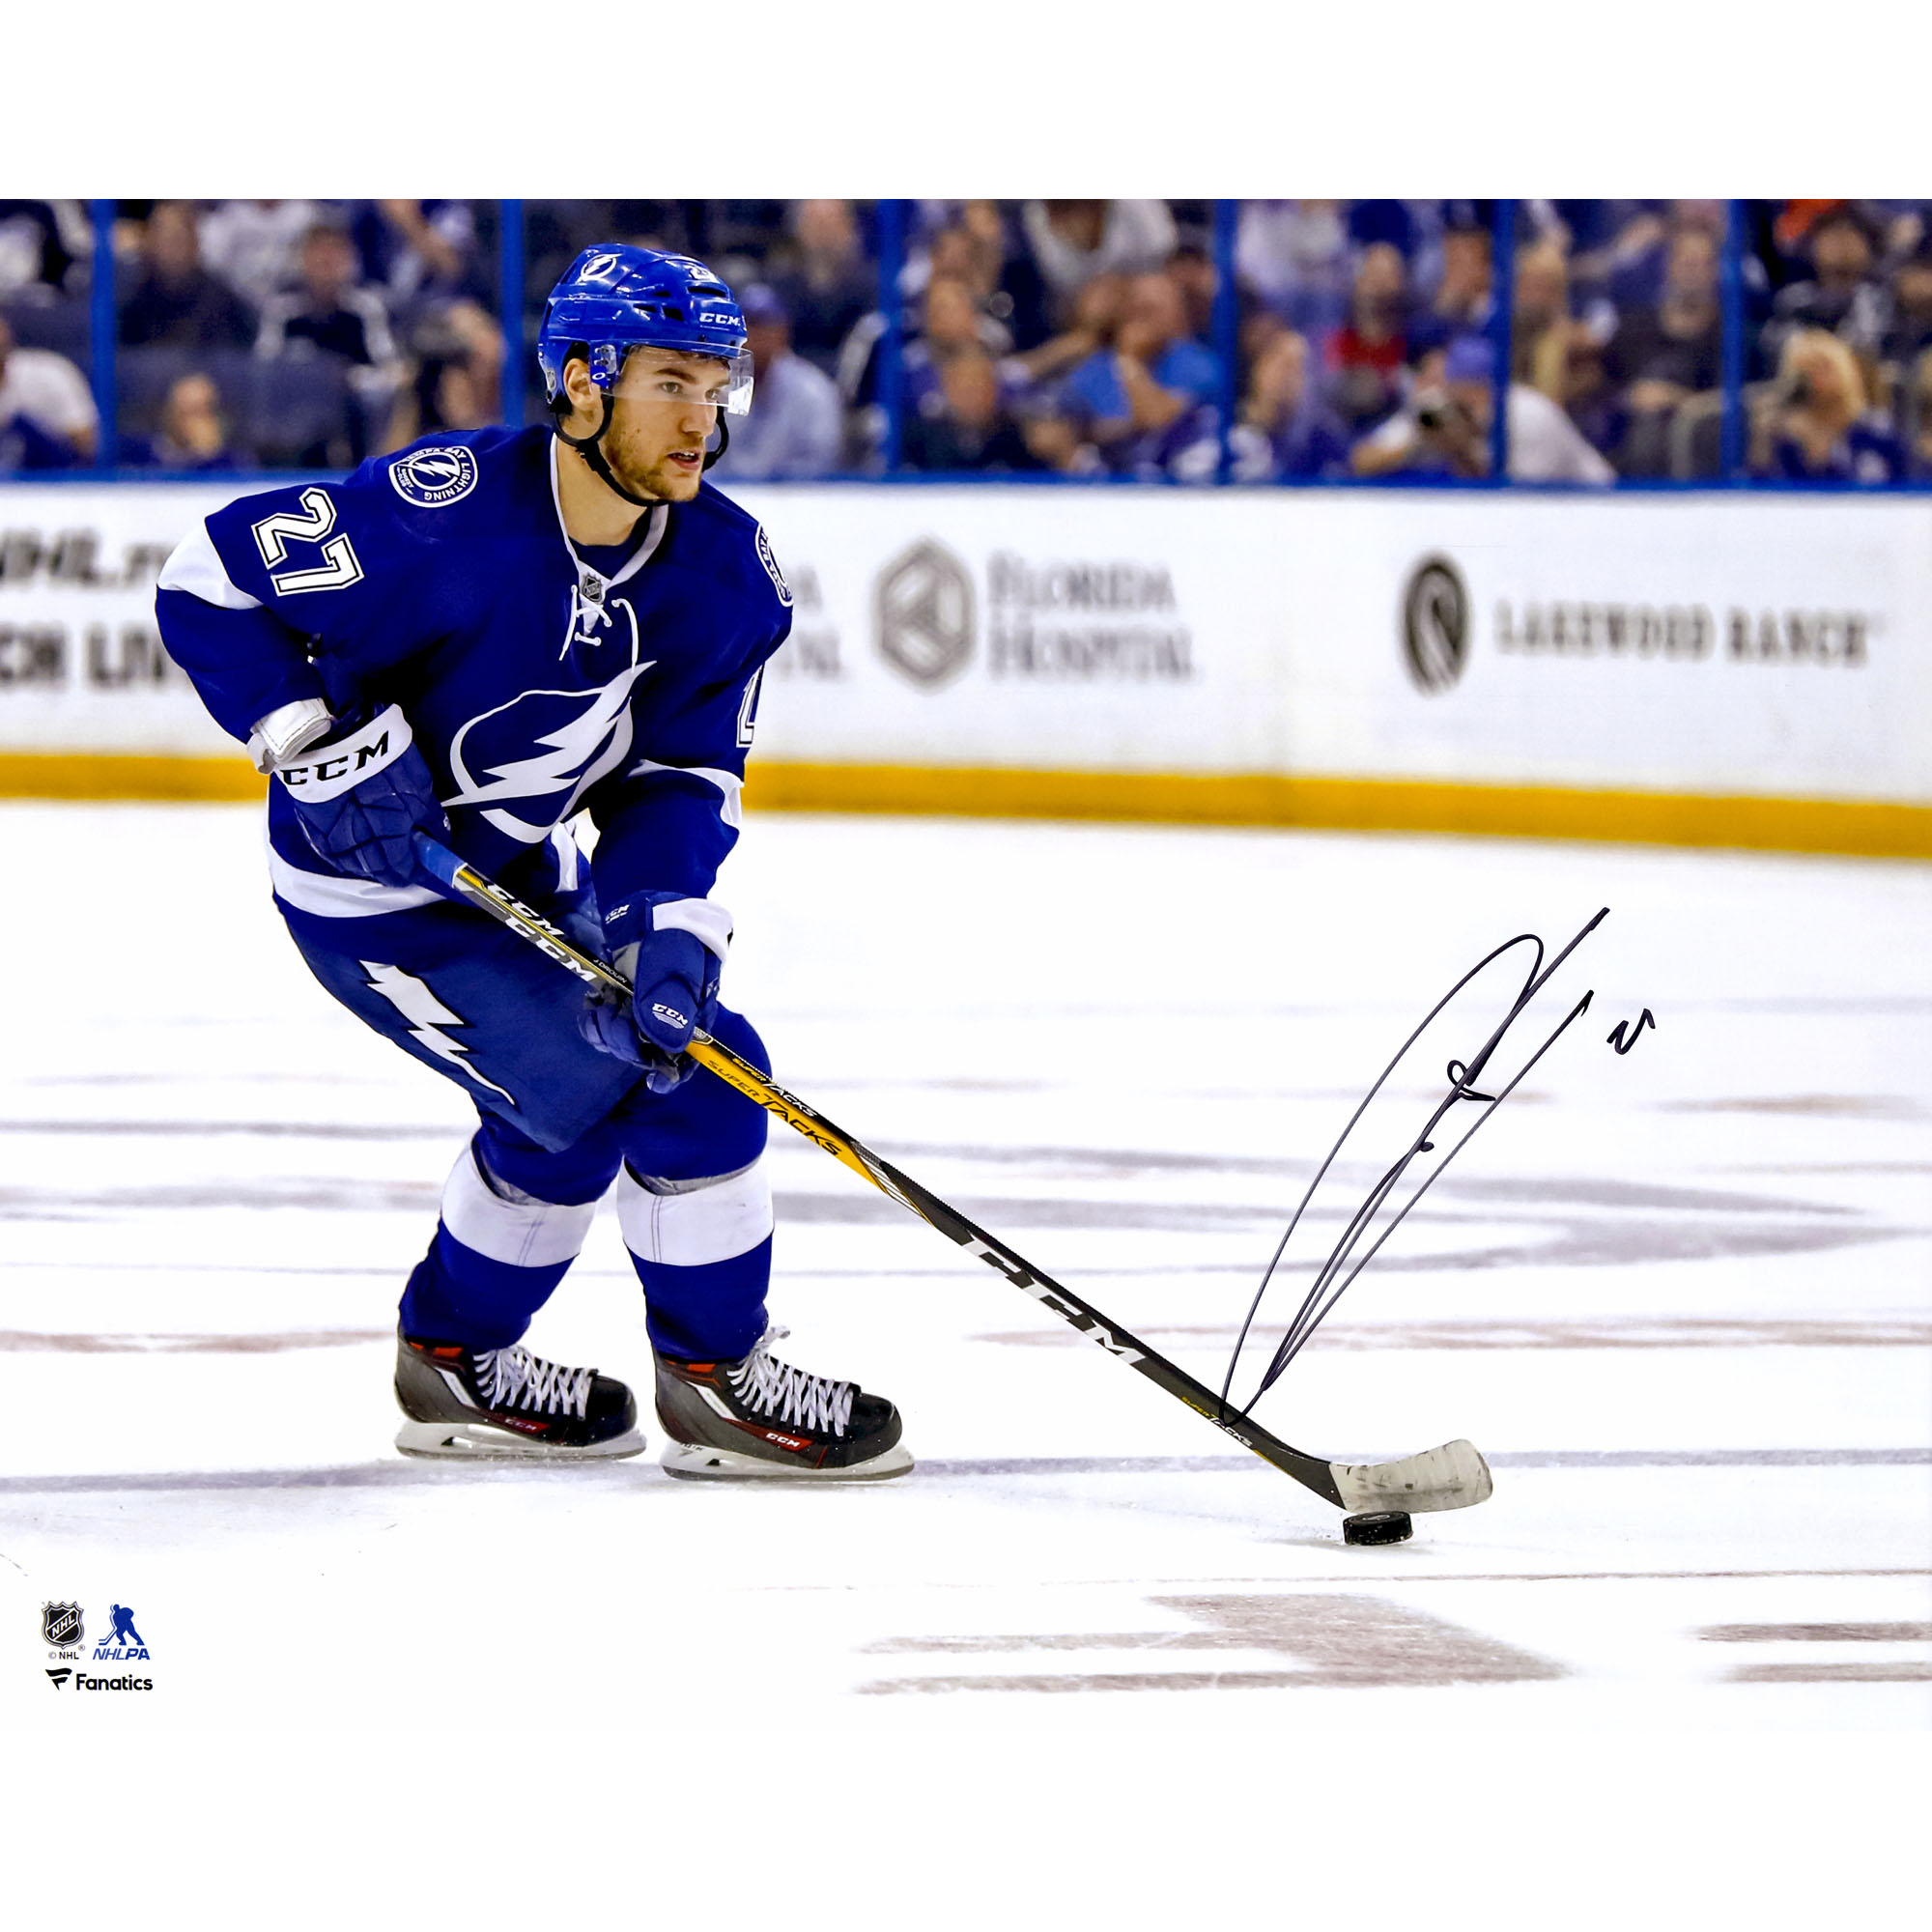 Jonathan Drouin Tampa Bay Lightning Fanatics Authentic Autographed 16'' x 20'' Blue Jersey Skating Photograph No Size by Fanatics Authentic